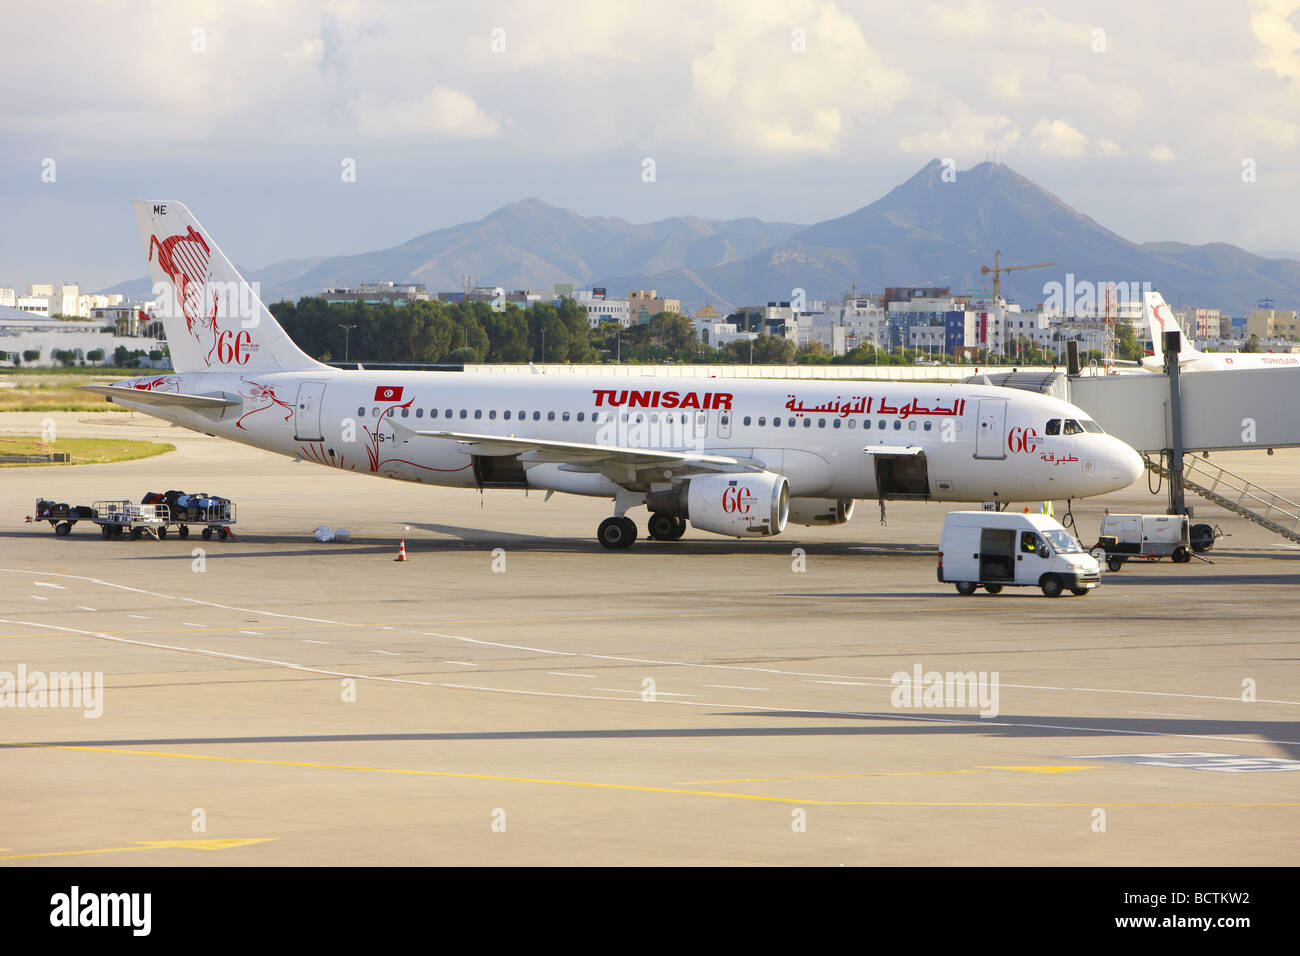 Plane At The Airport, Tunis, Tunisia, Northern Africa   Stock Image